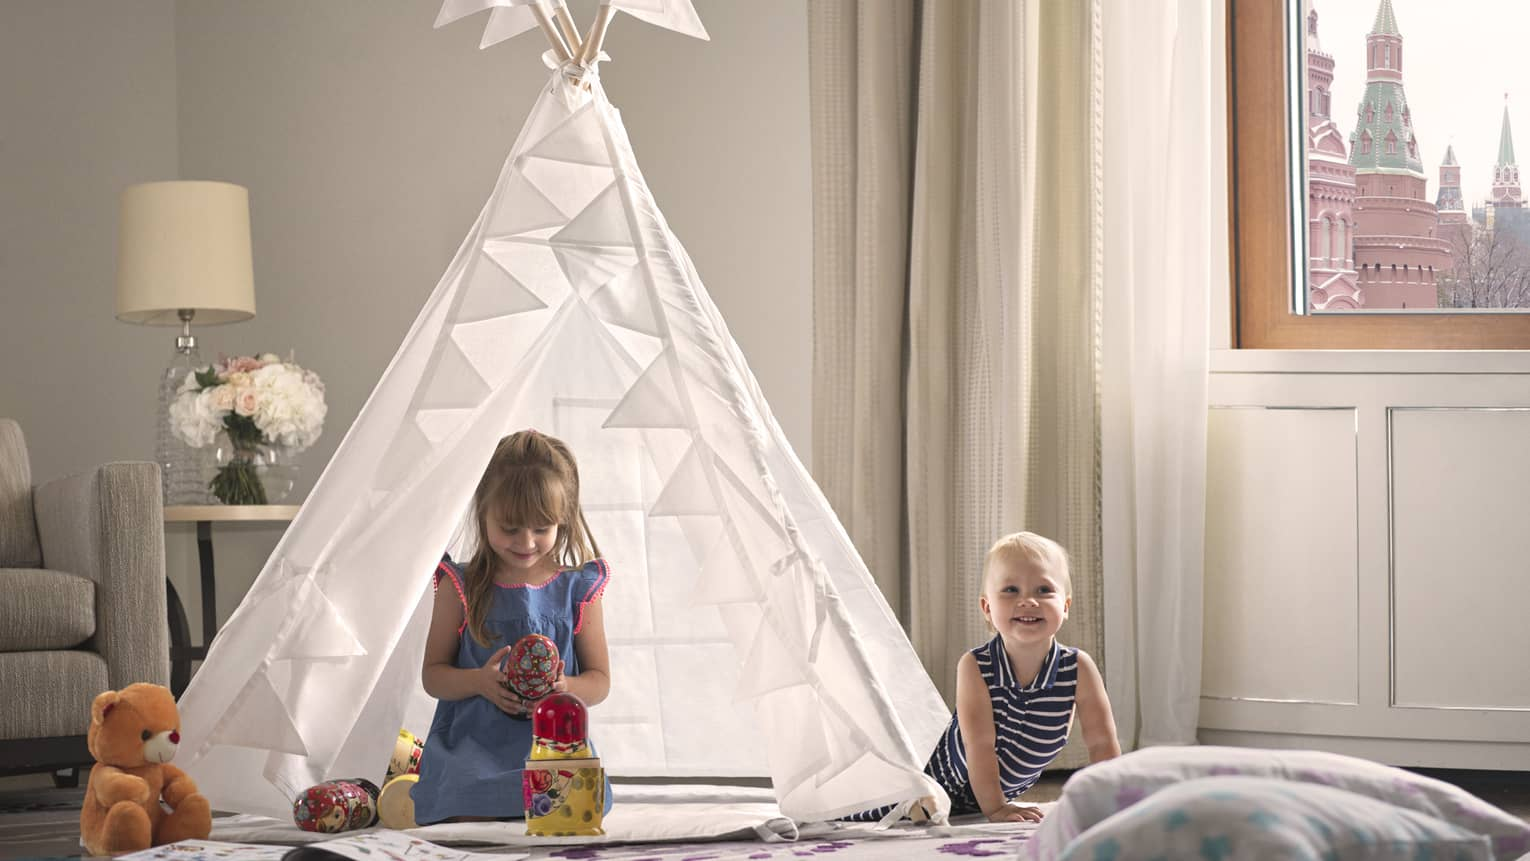 Two little girls play in a child's teepee in a four seasons hotel room